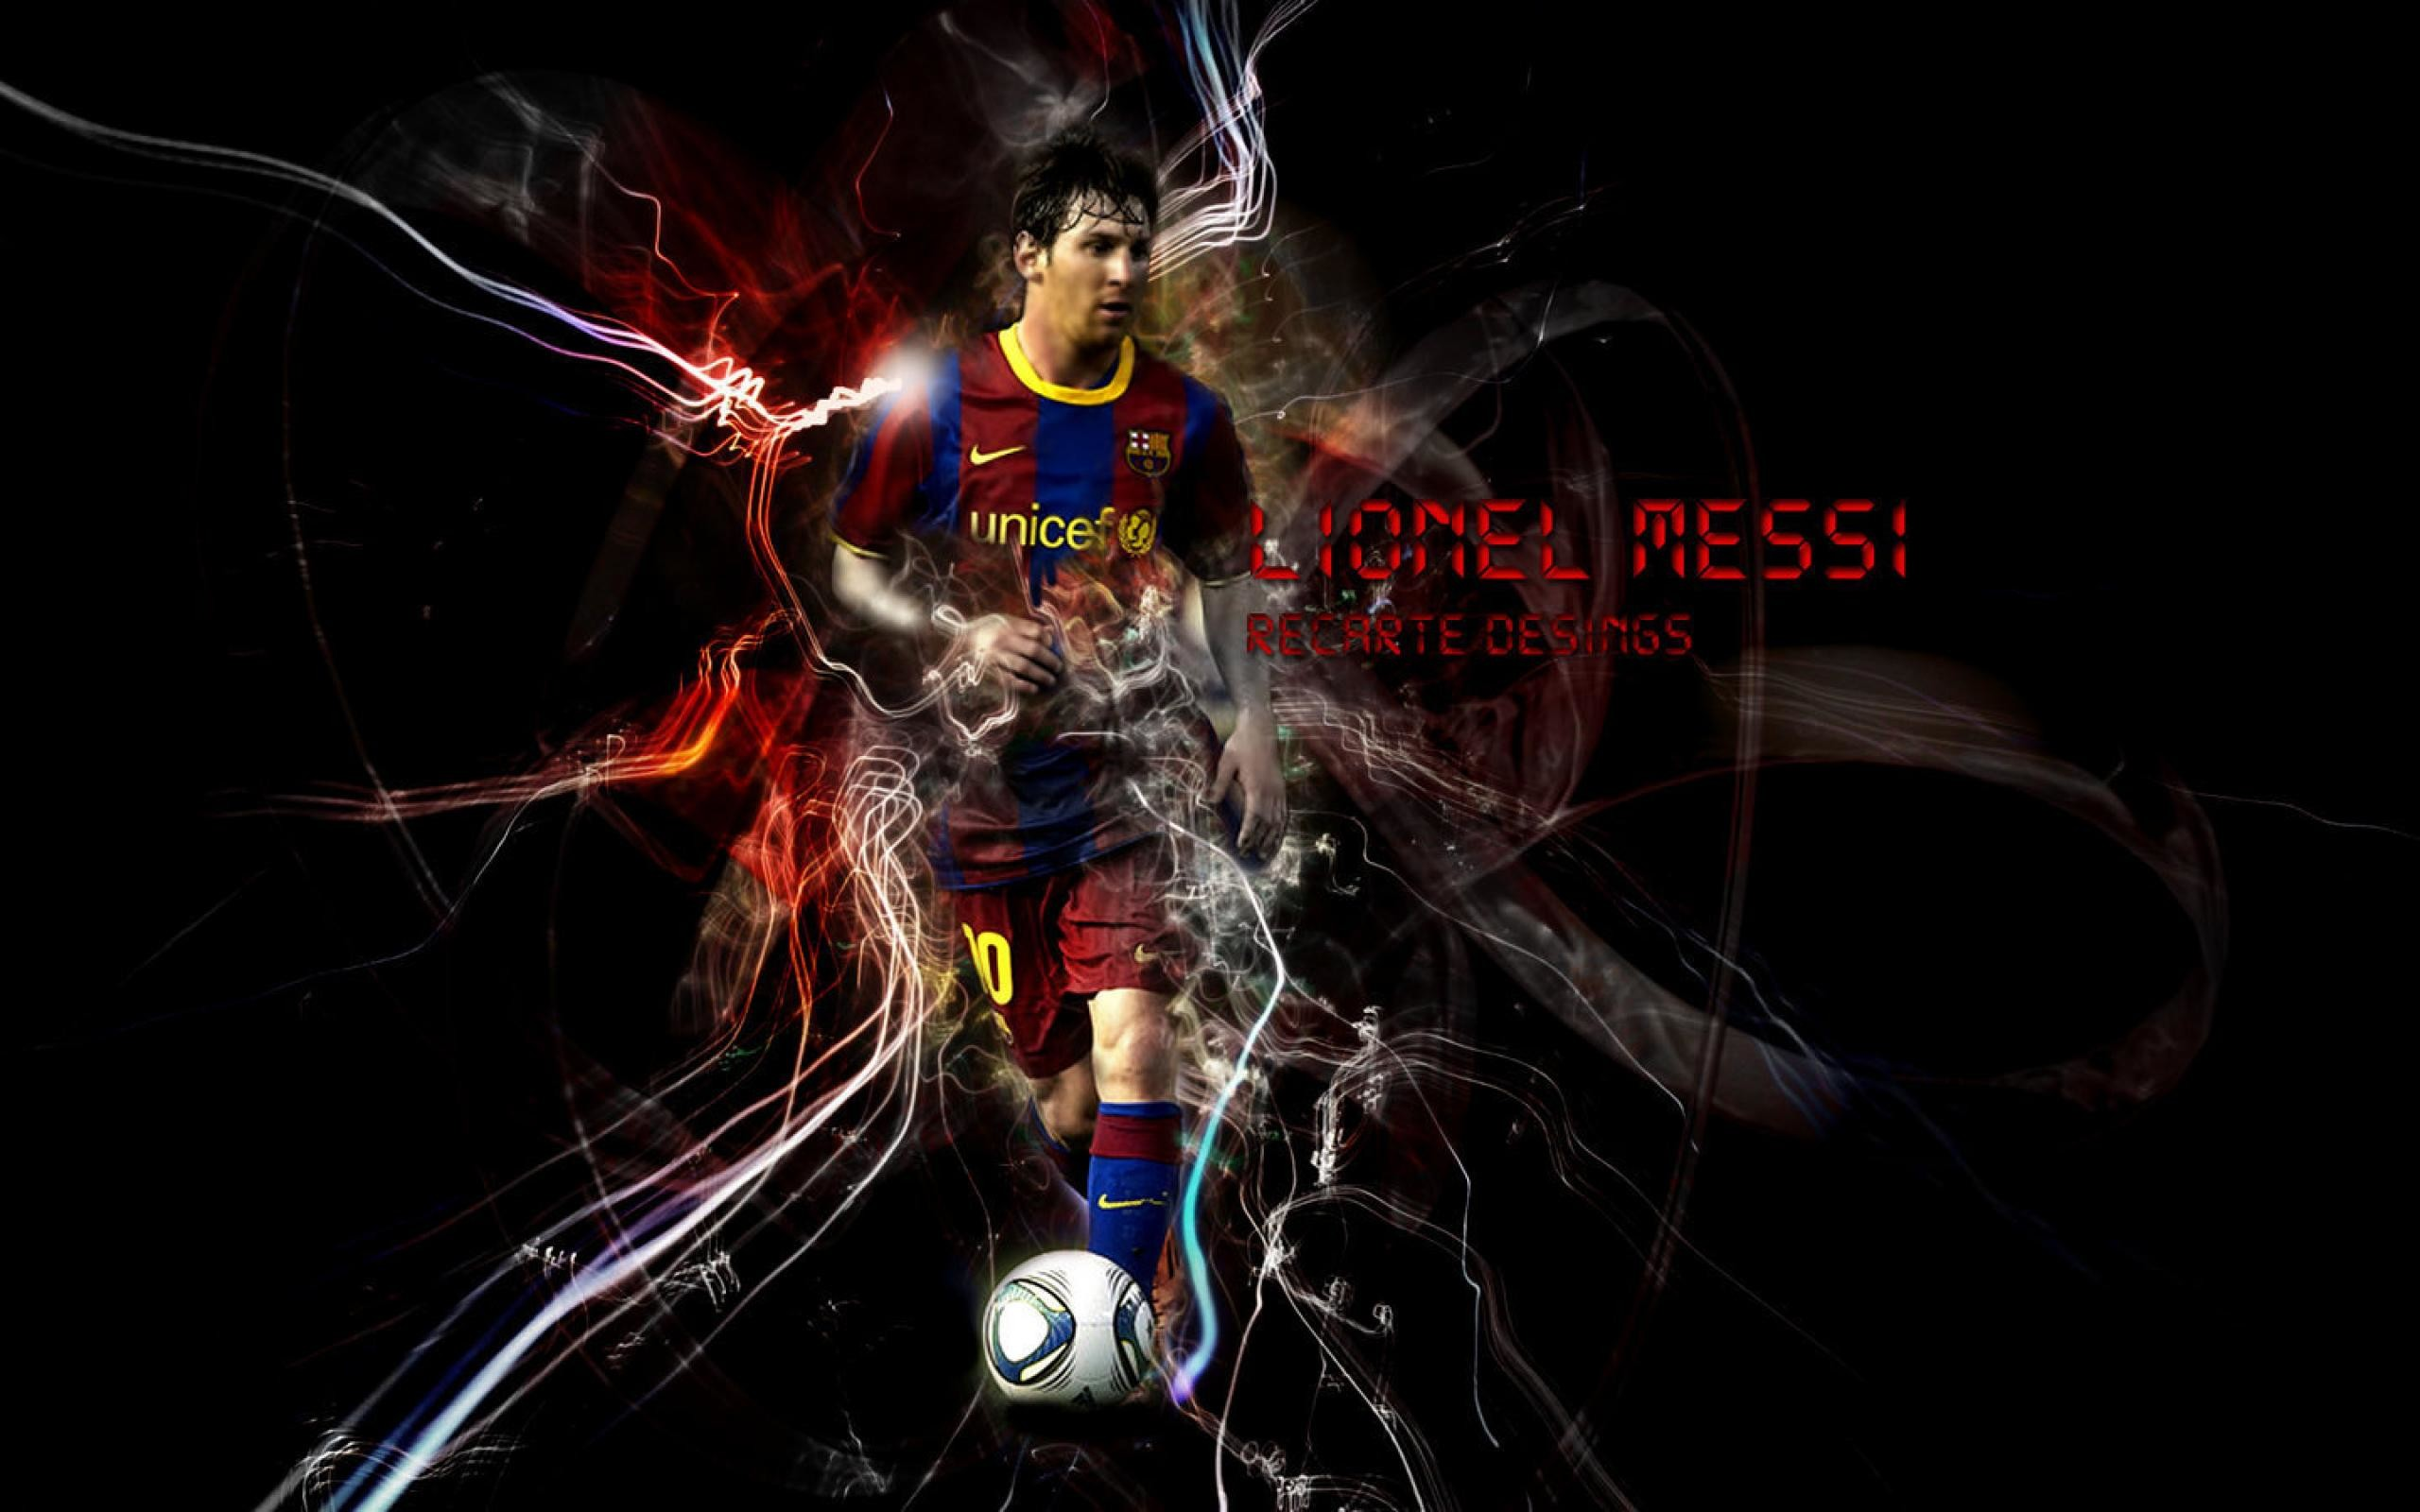 2560x1600 Cool Wallpapers Of Messi  Px, #P645B15